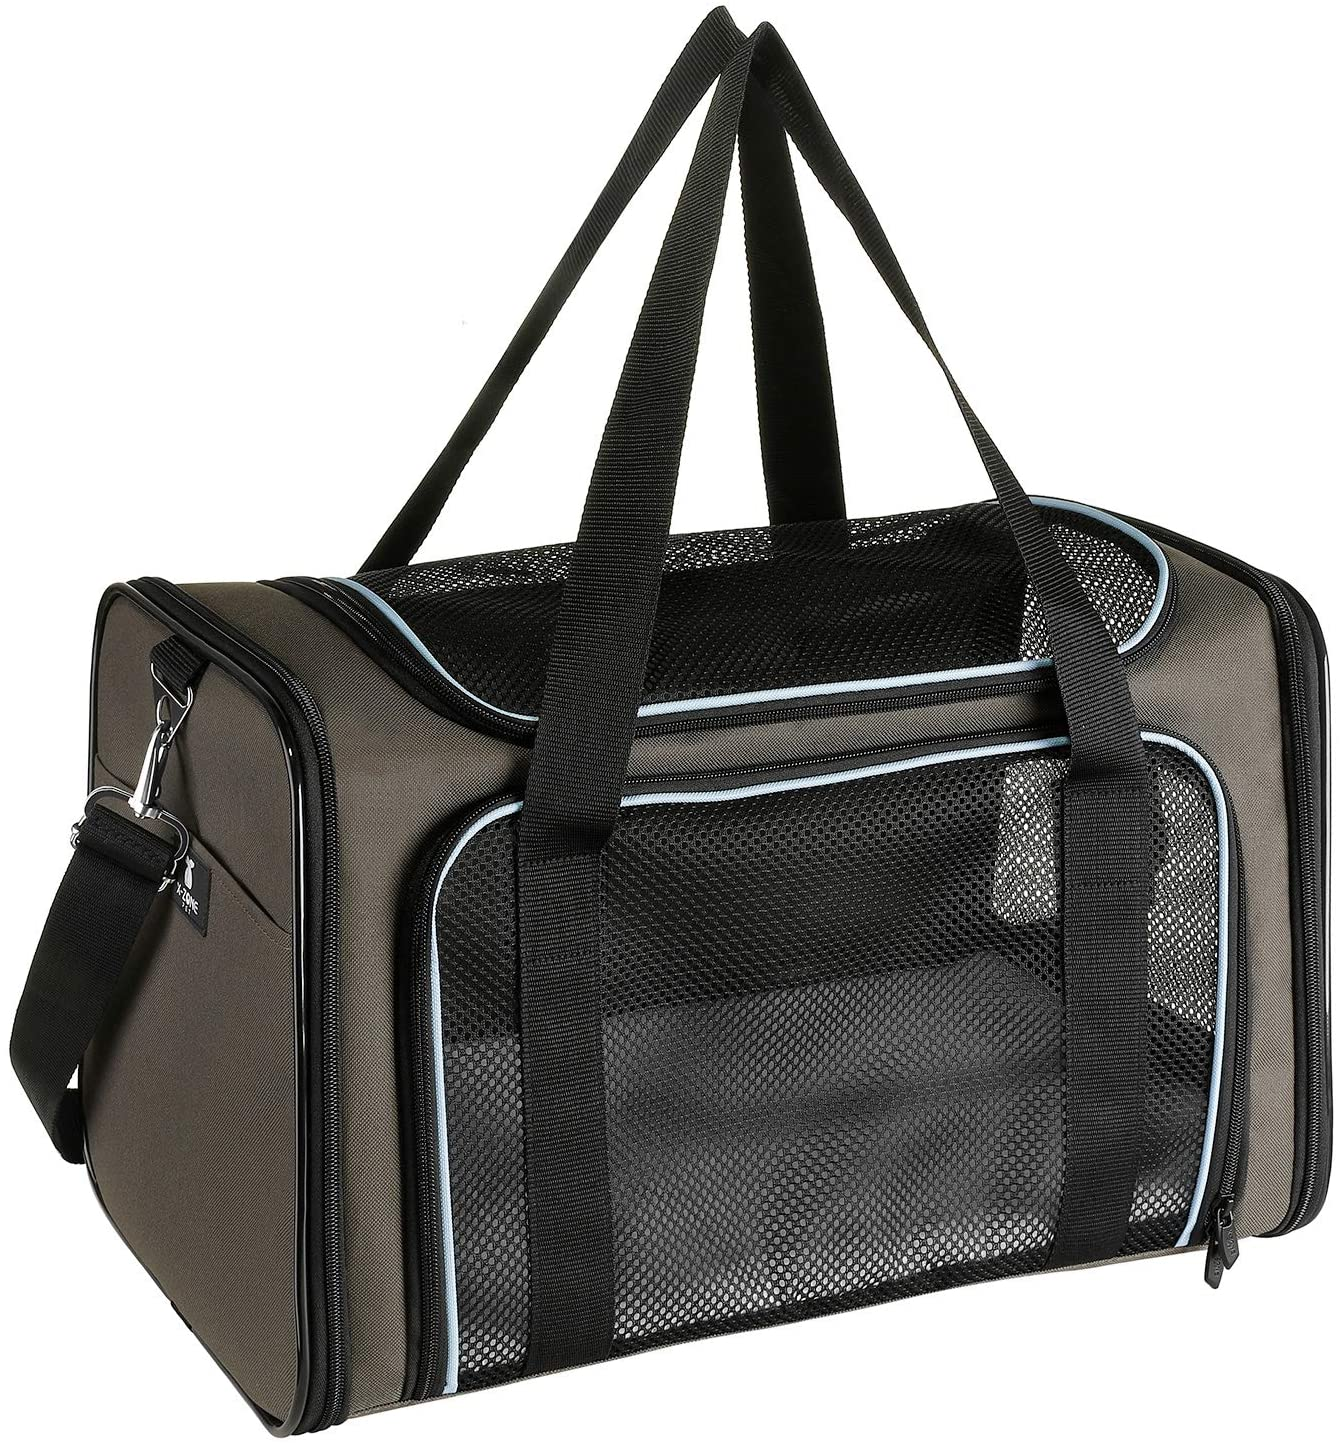 X-ZONE PET Airline Approved Pet Carriers, Soft Sided Collapsible Pet Travel Carrier for Medium Puppy and Cats : Pet Supplies